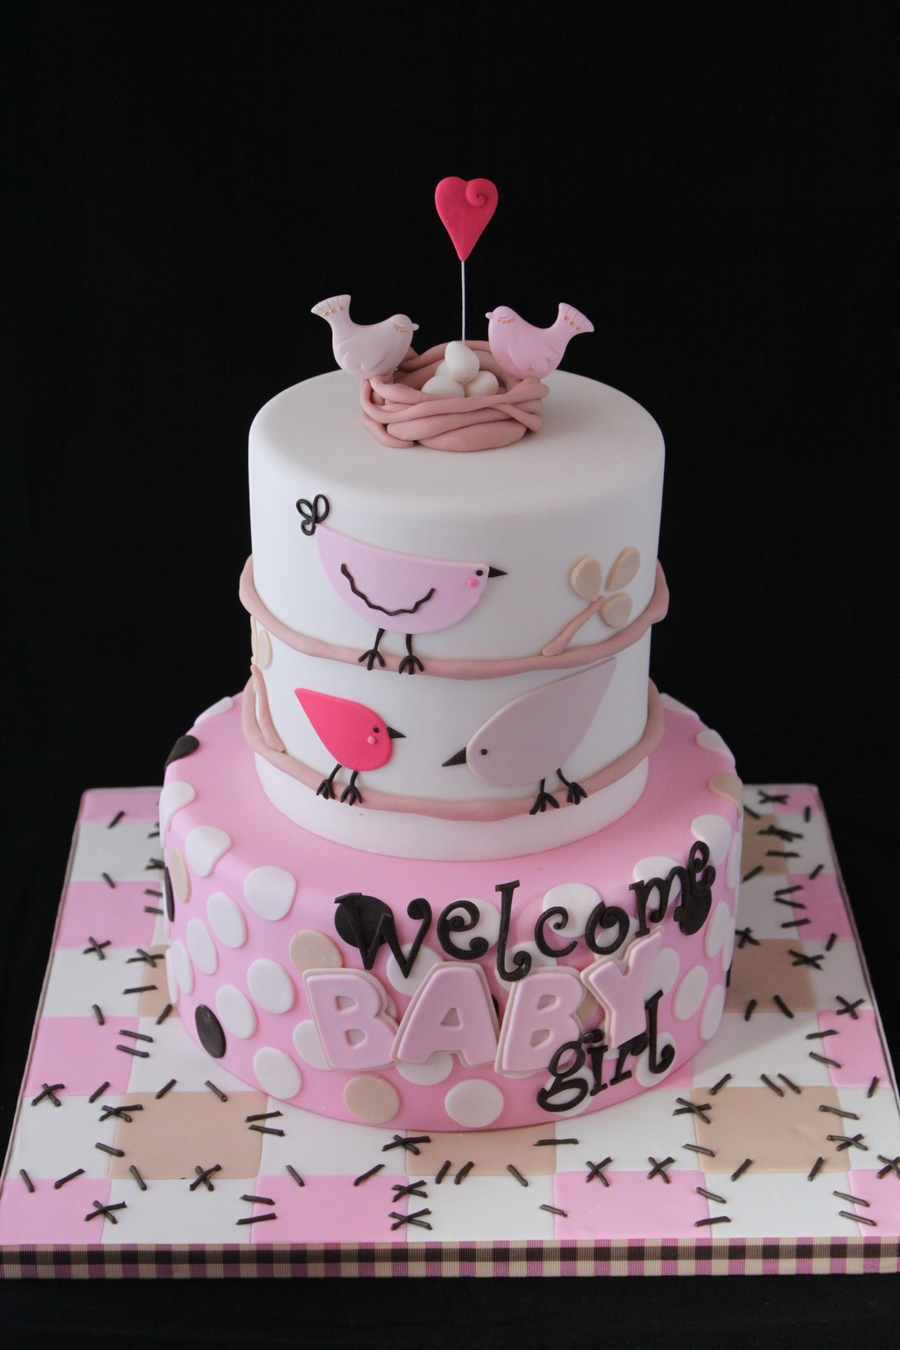 Welcome Baby Girl Cake - CakeCentral.com